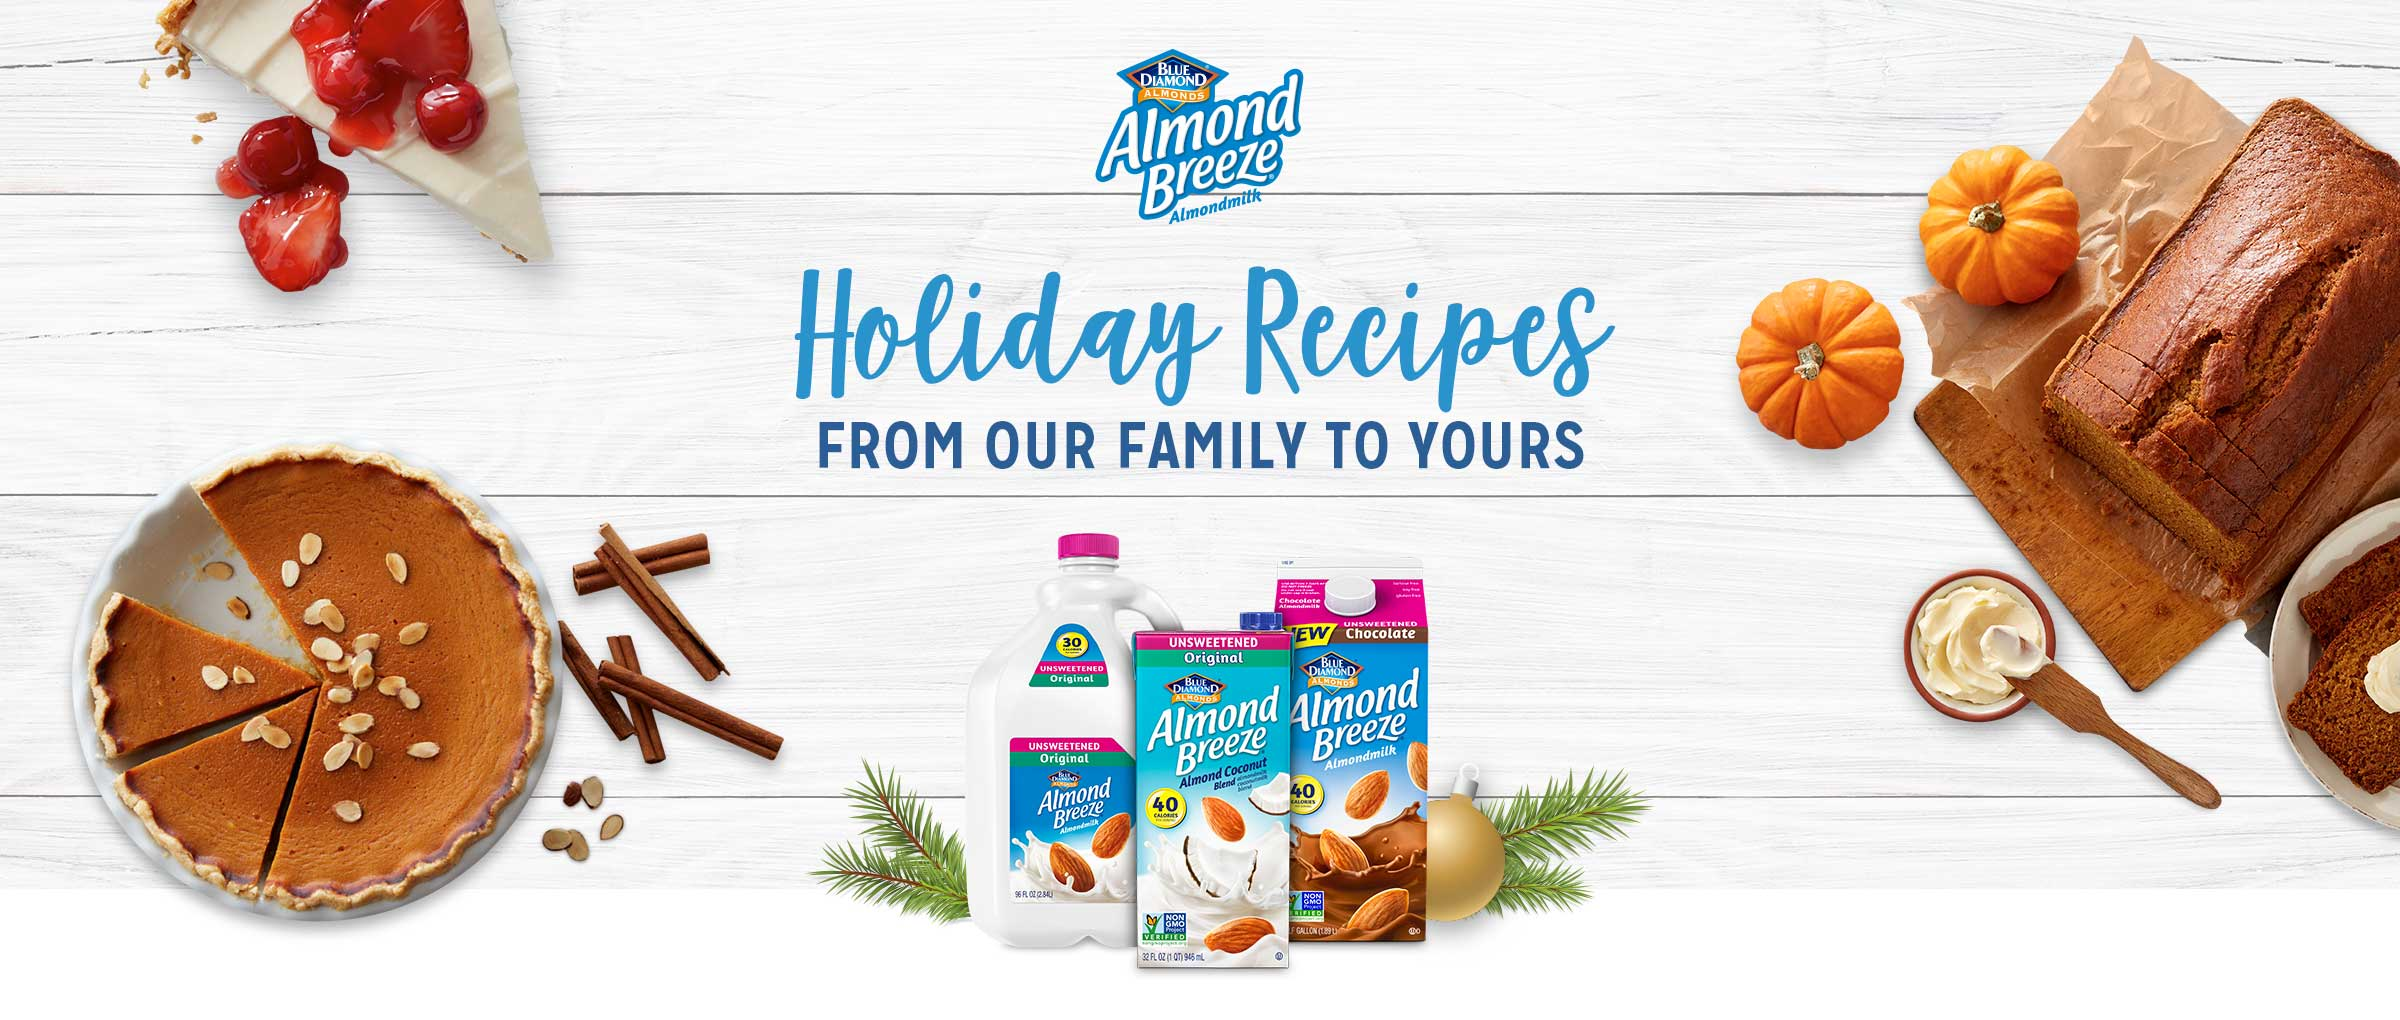 Almond Breeze Holiday Recipes in a Breeze